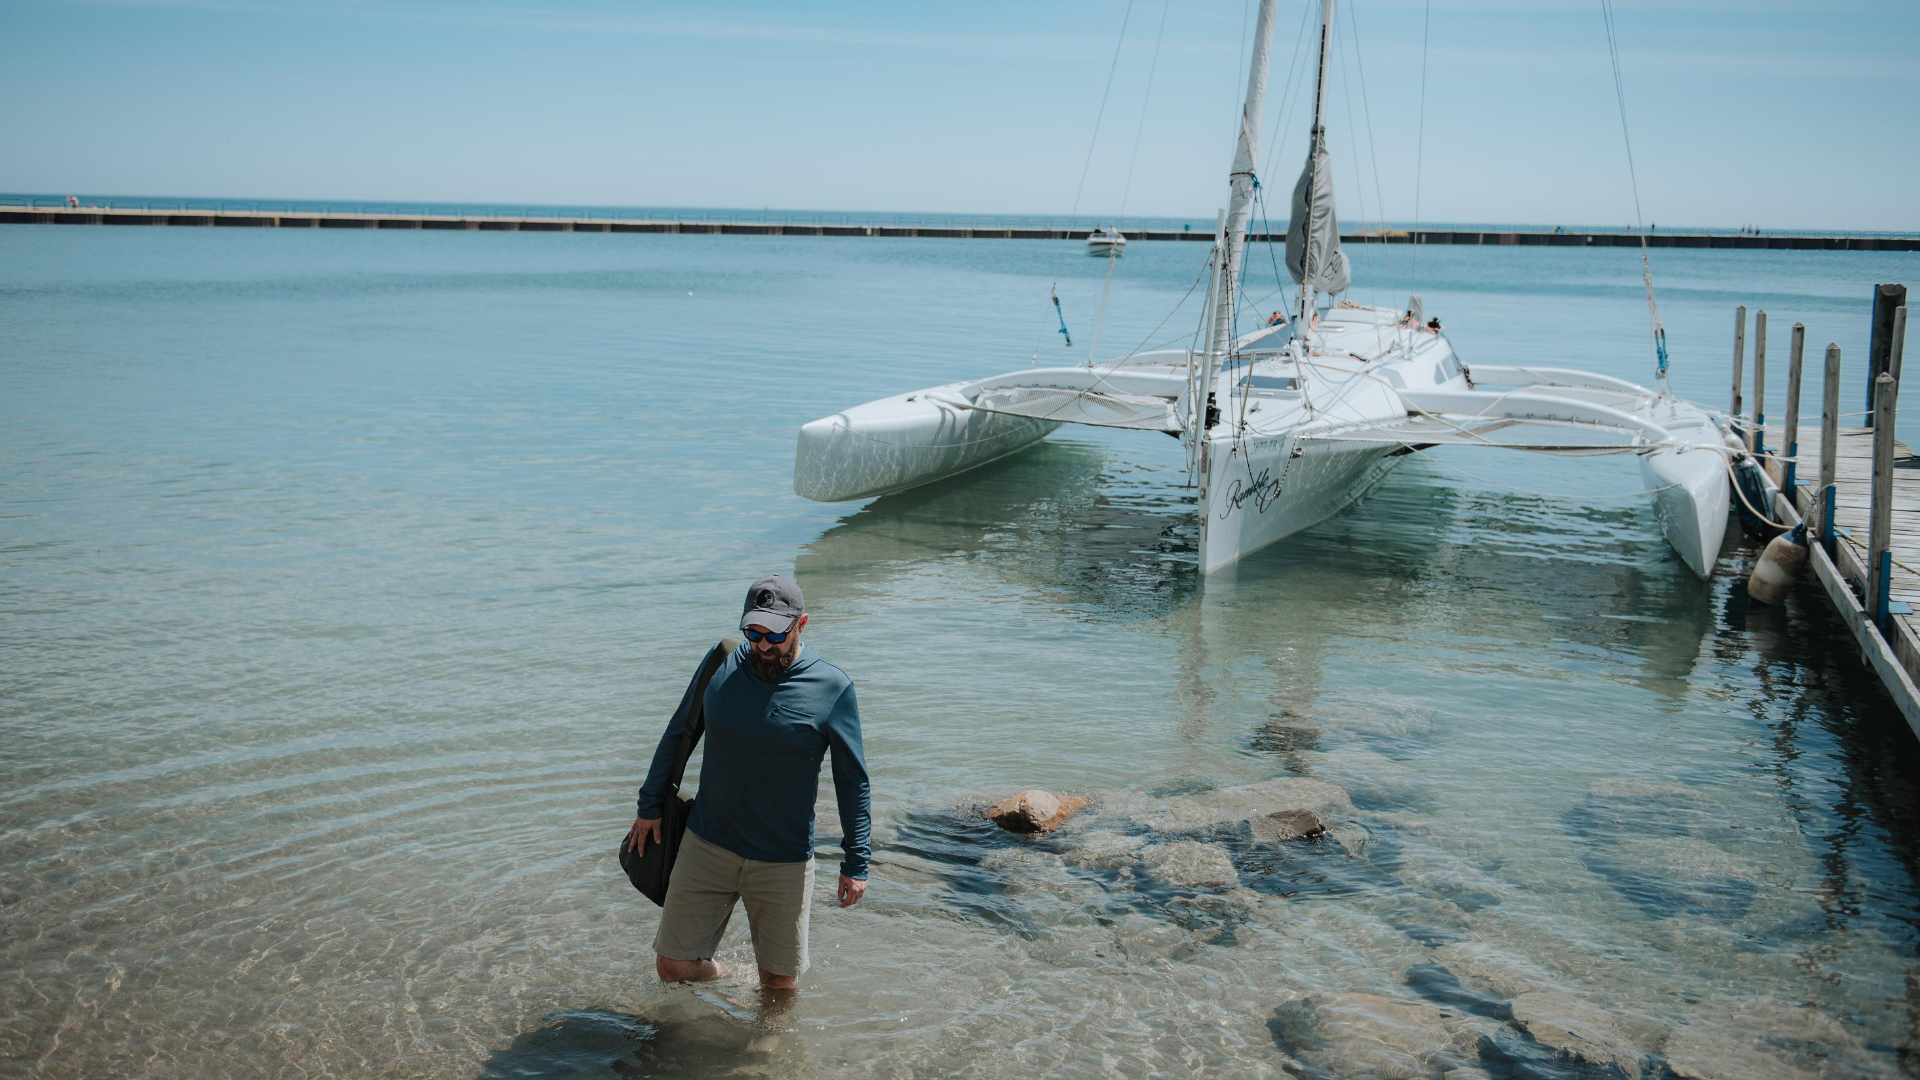 man walking through the water in front of a boat, wearing muskox shirt